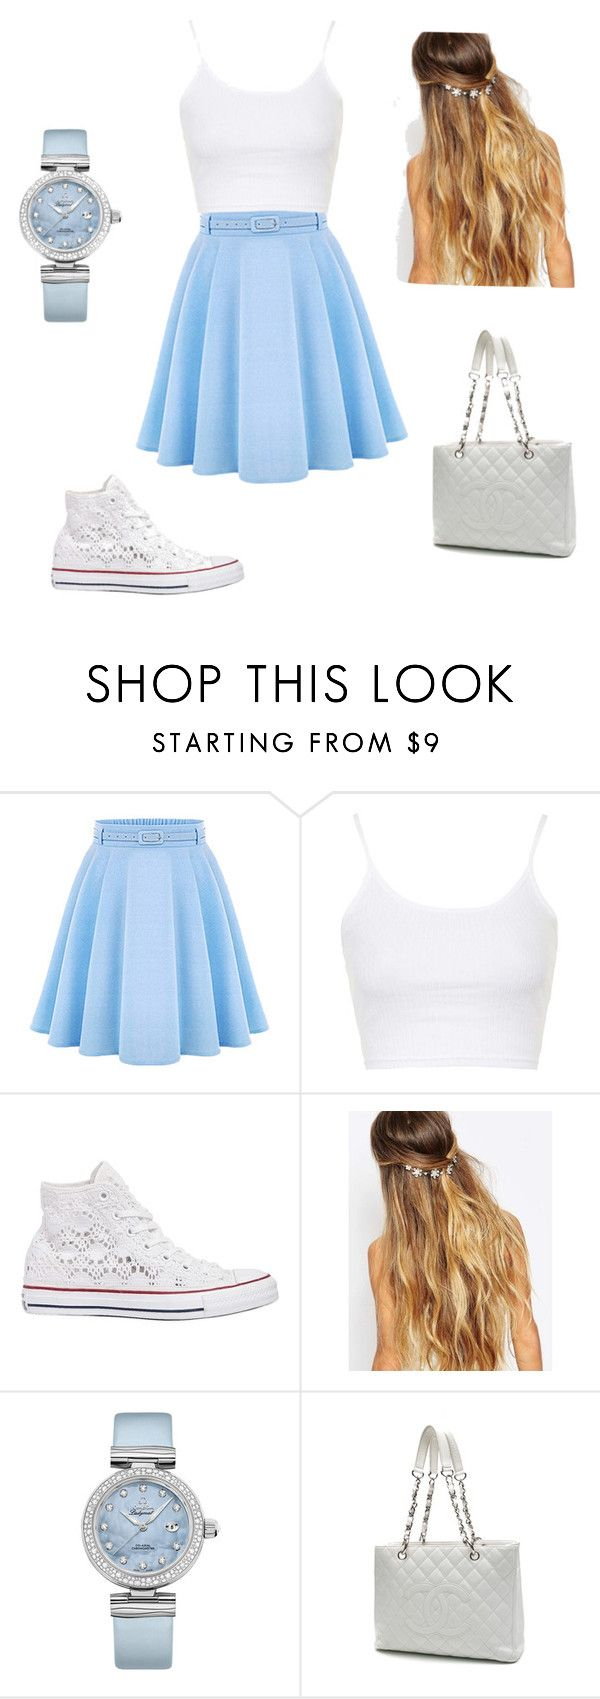 """Blue Cutesy"" by alyssasr013 on Polyvore featuring WithChic, Topshop, Converse, Johnny Loves Rosie, OMEGA, Chanel, women's clothing, women, female and woman"